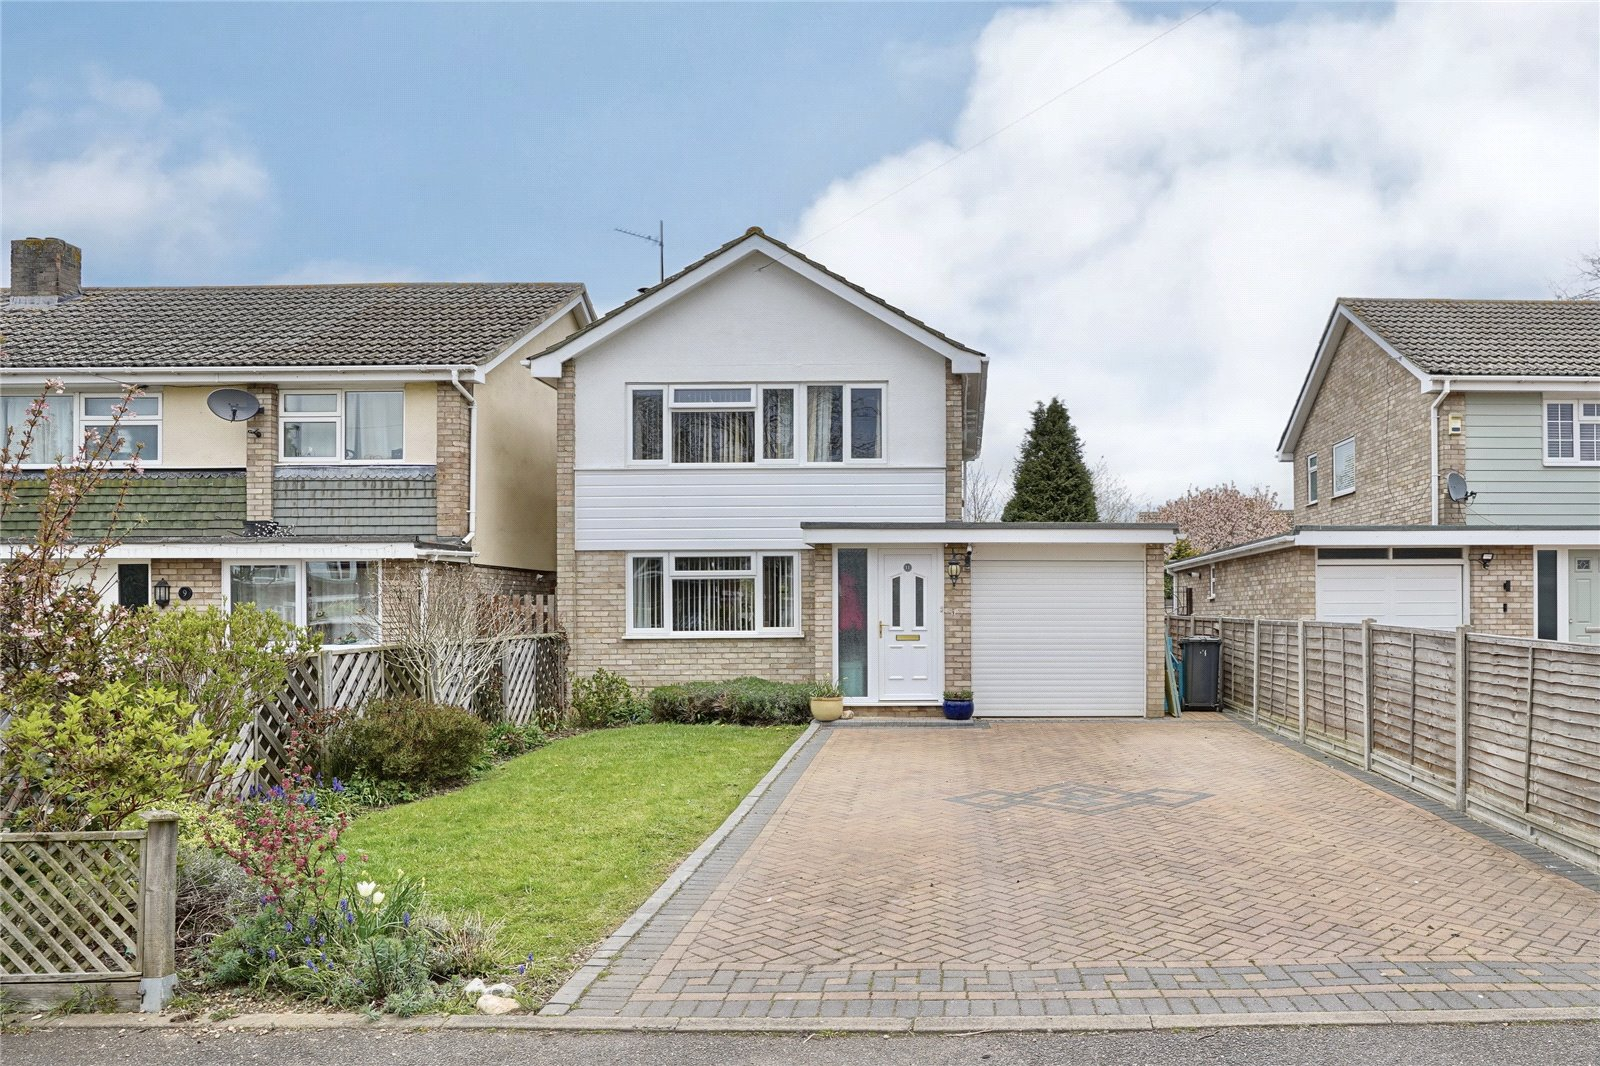 3 bed house for sale in St. Ives, PE27 5QH 0